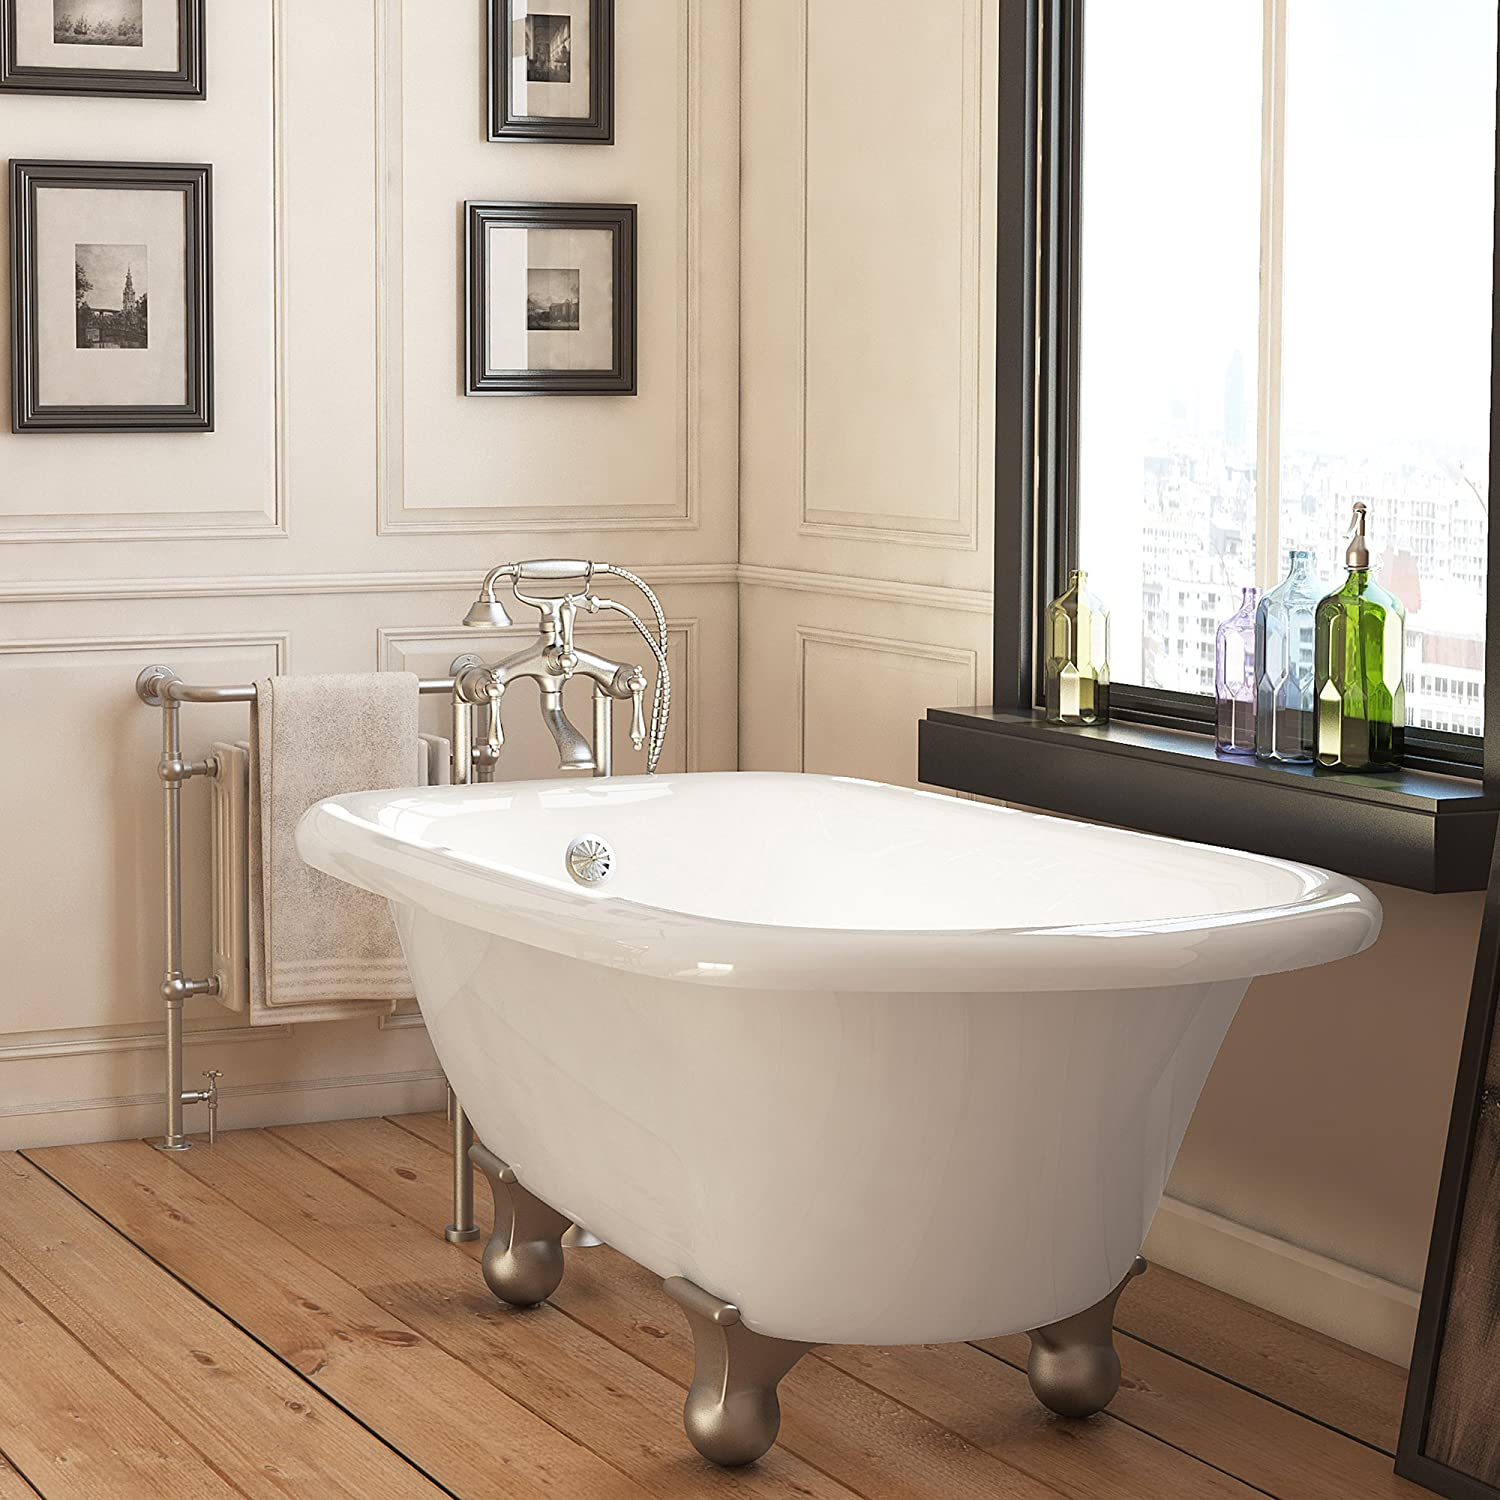 Luxury 54 inch Small Modern Clawfoot Tub in White with Stand-Alone ...